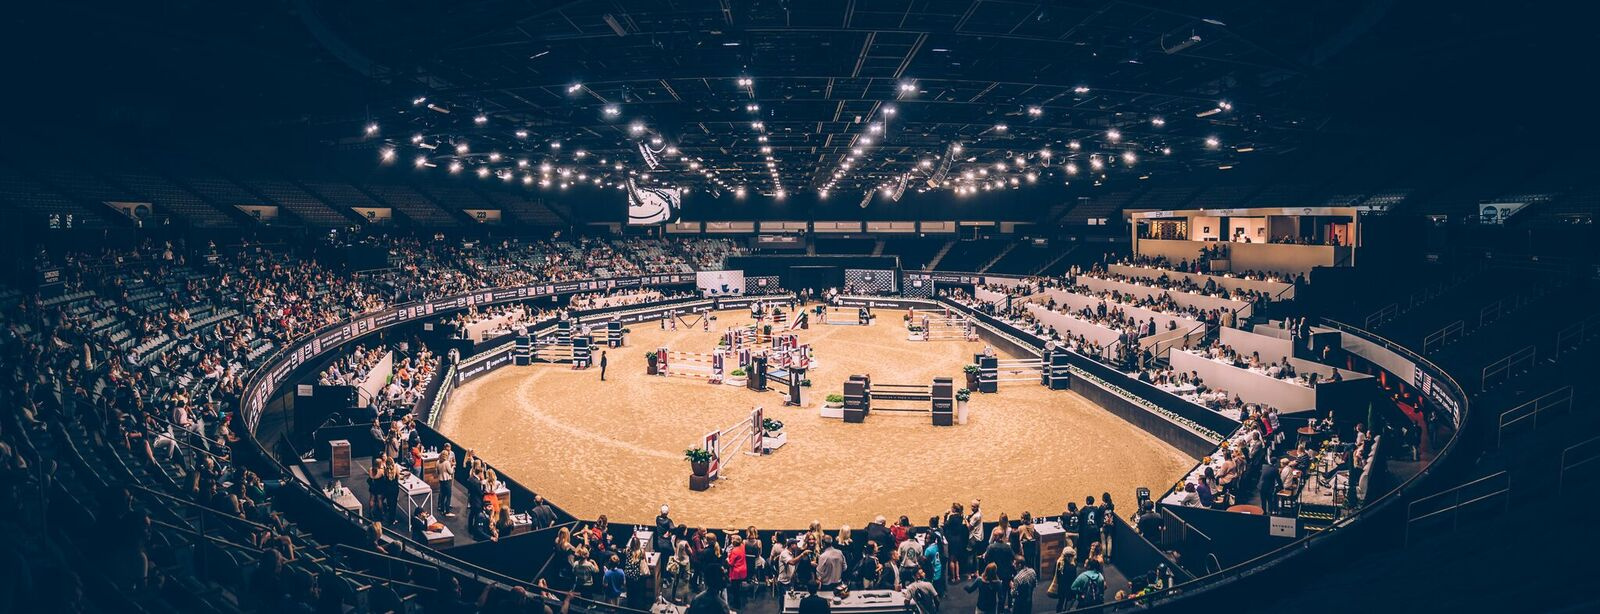 arena-longines LONG BEACH HOSTS THE LONGINES MASTERS